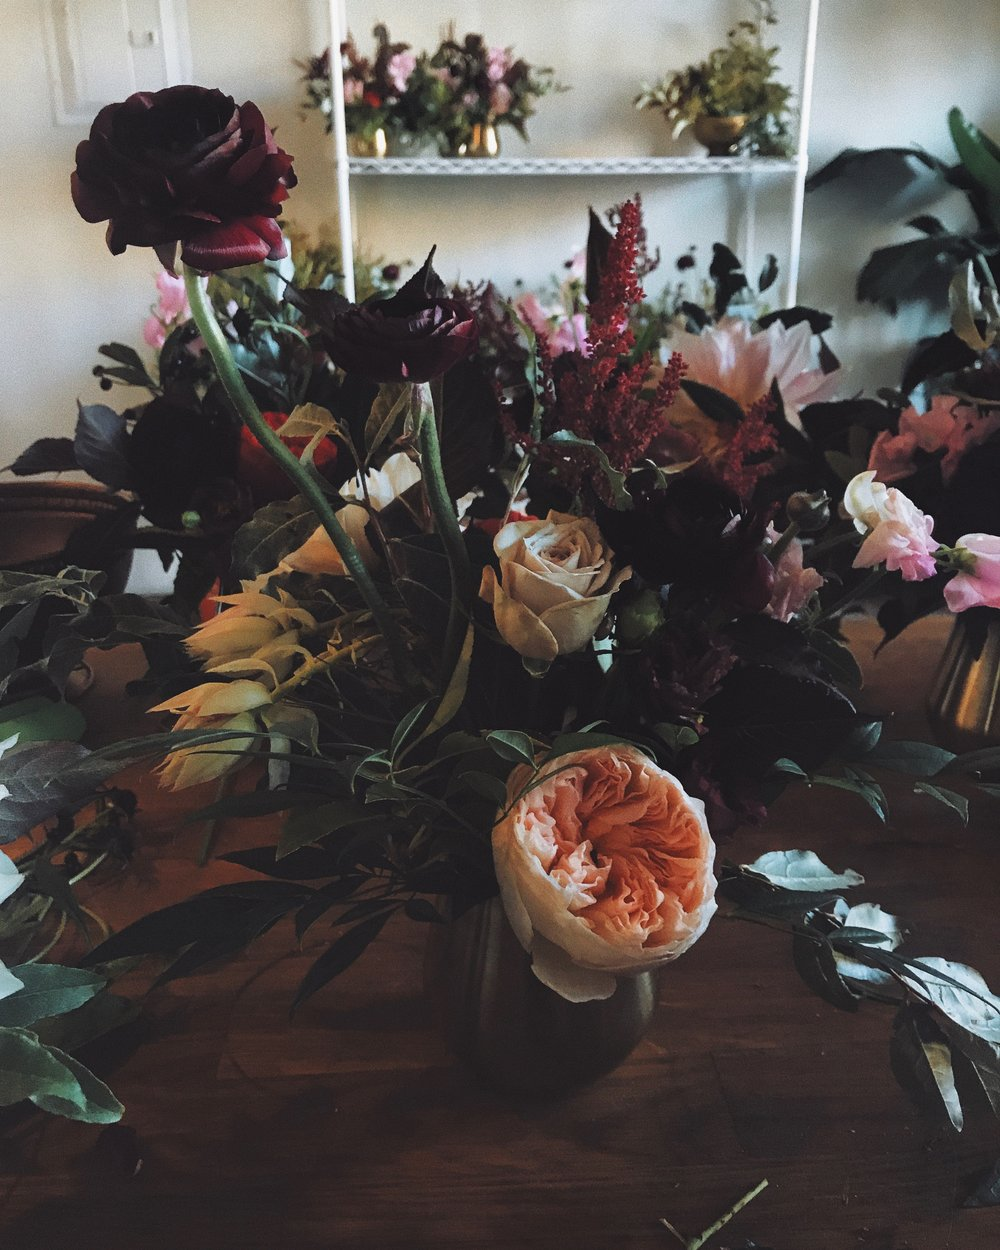 Our Services - Wedding Floral Design            Branding & Marketing EventsWeekly & Monthly Business AccountsDeliveries & Drop-offs       Editorial & Styling          Floral Installations Conference & Wellness Events